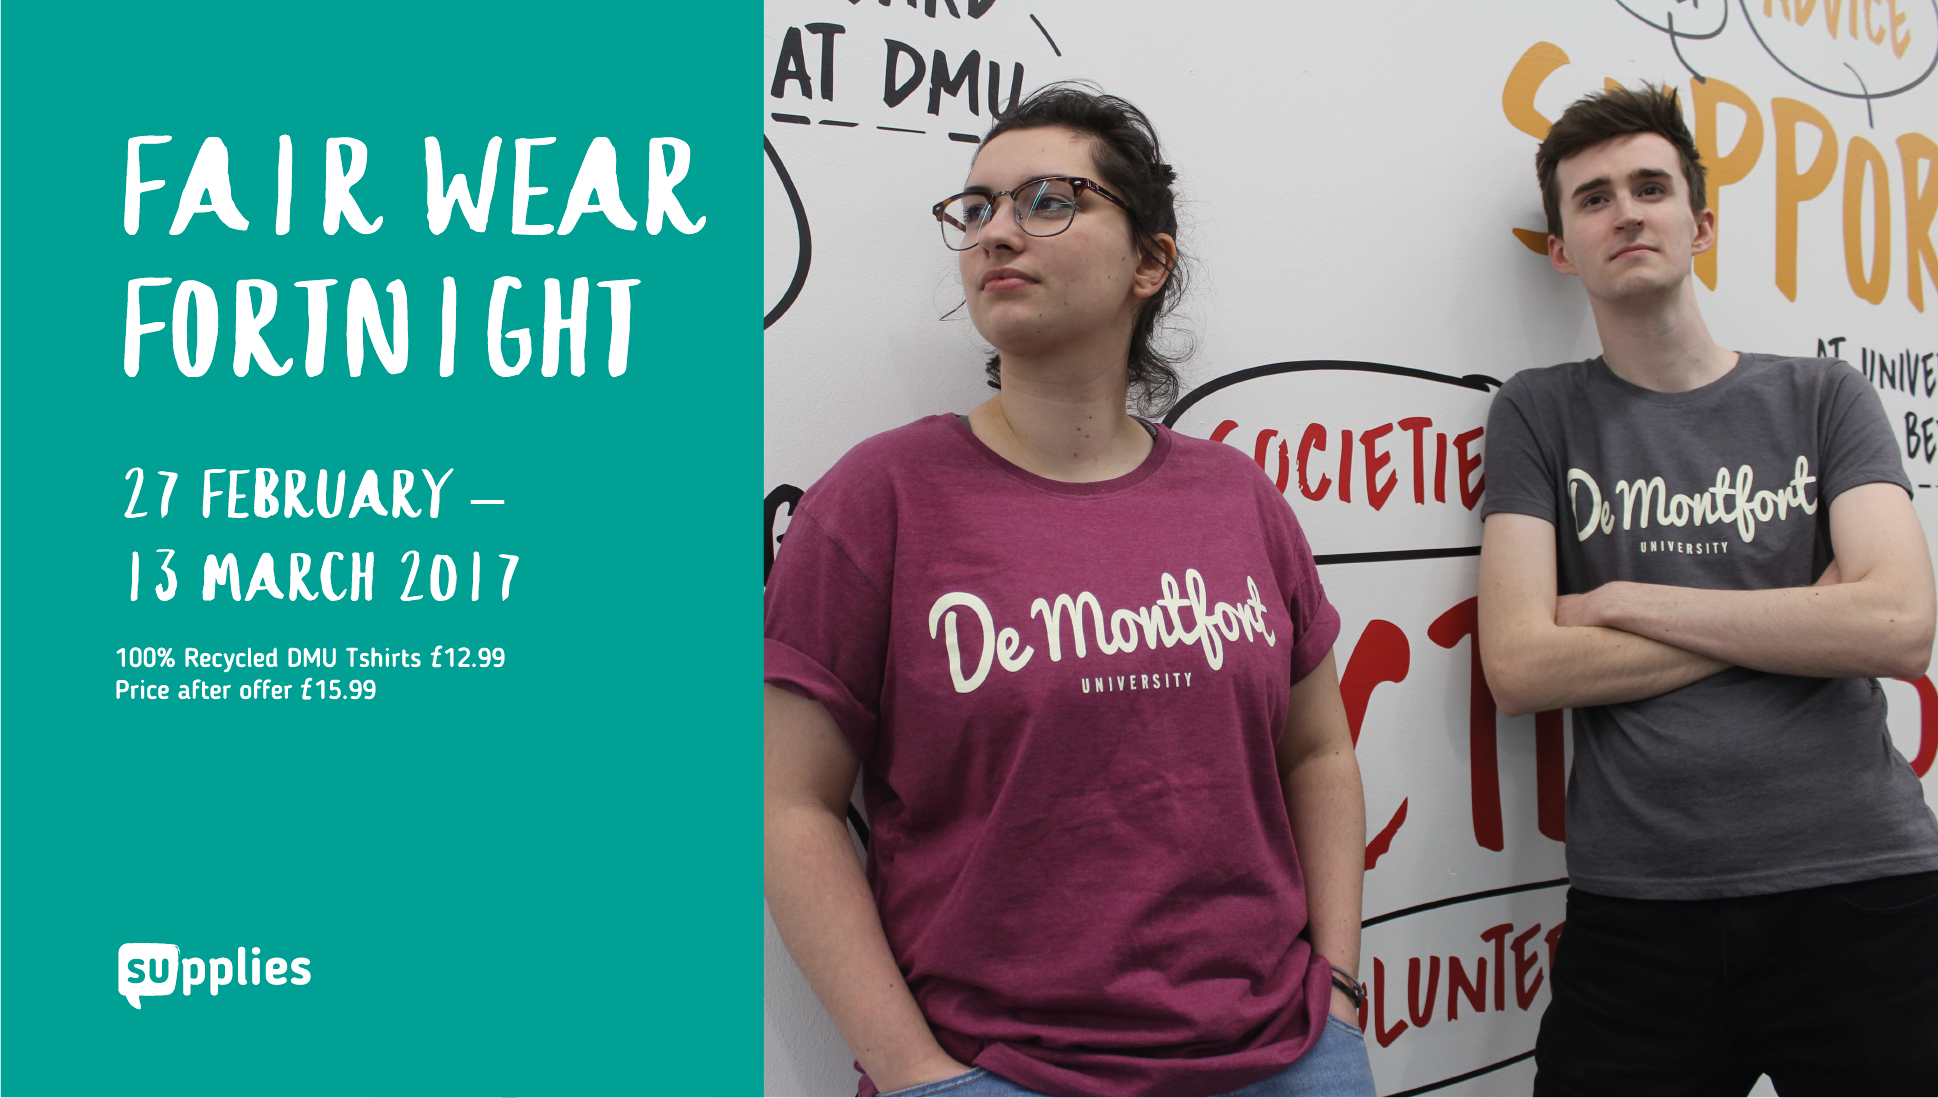 Look good and do good with Fair Wear Fortnight! Find out more: https://t.co/PZQl2QzYcz #LoveDSU https://t.co/CGi3JfPUz1